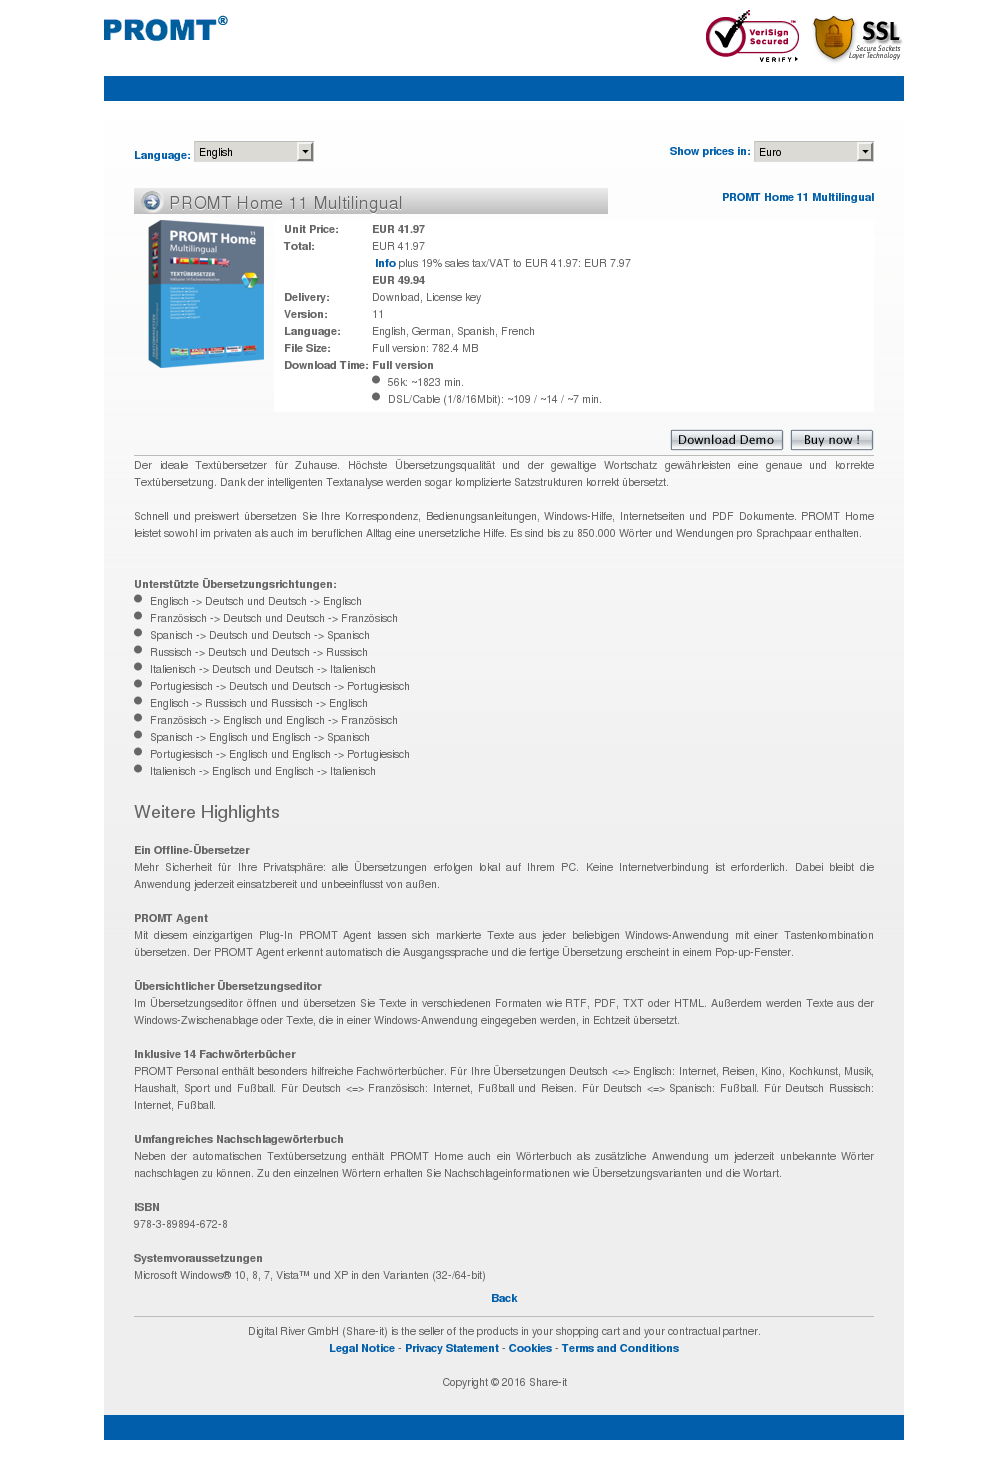 PROMT Home 11 Multilingual